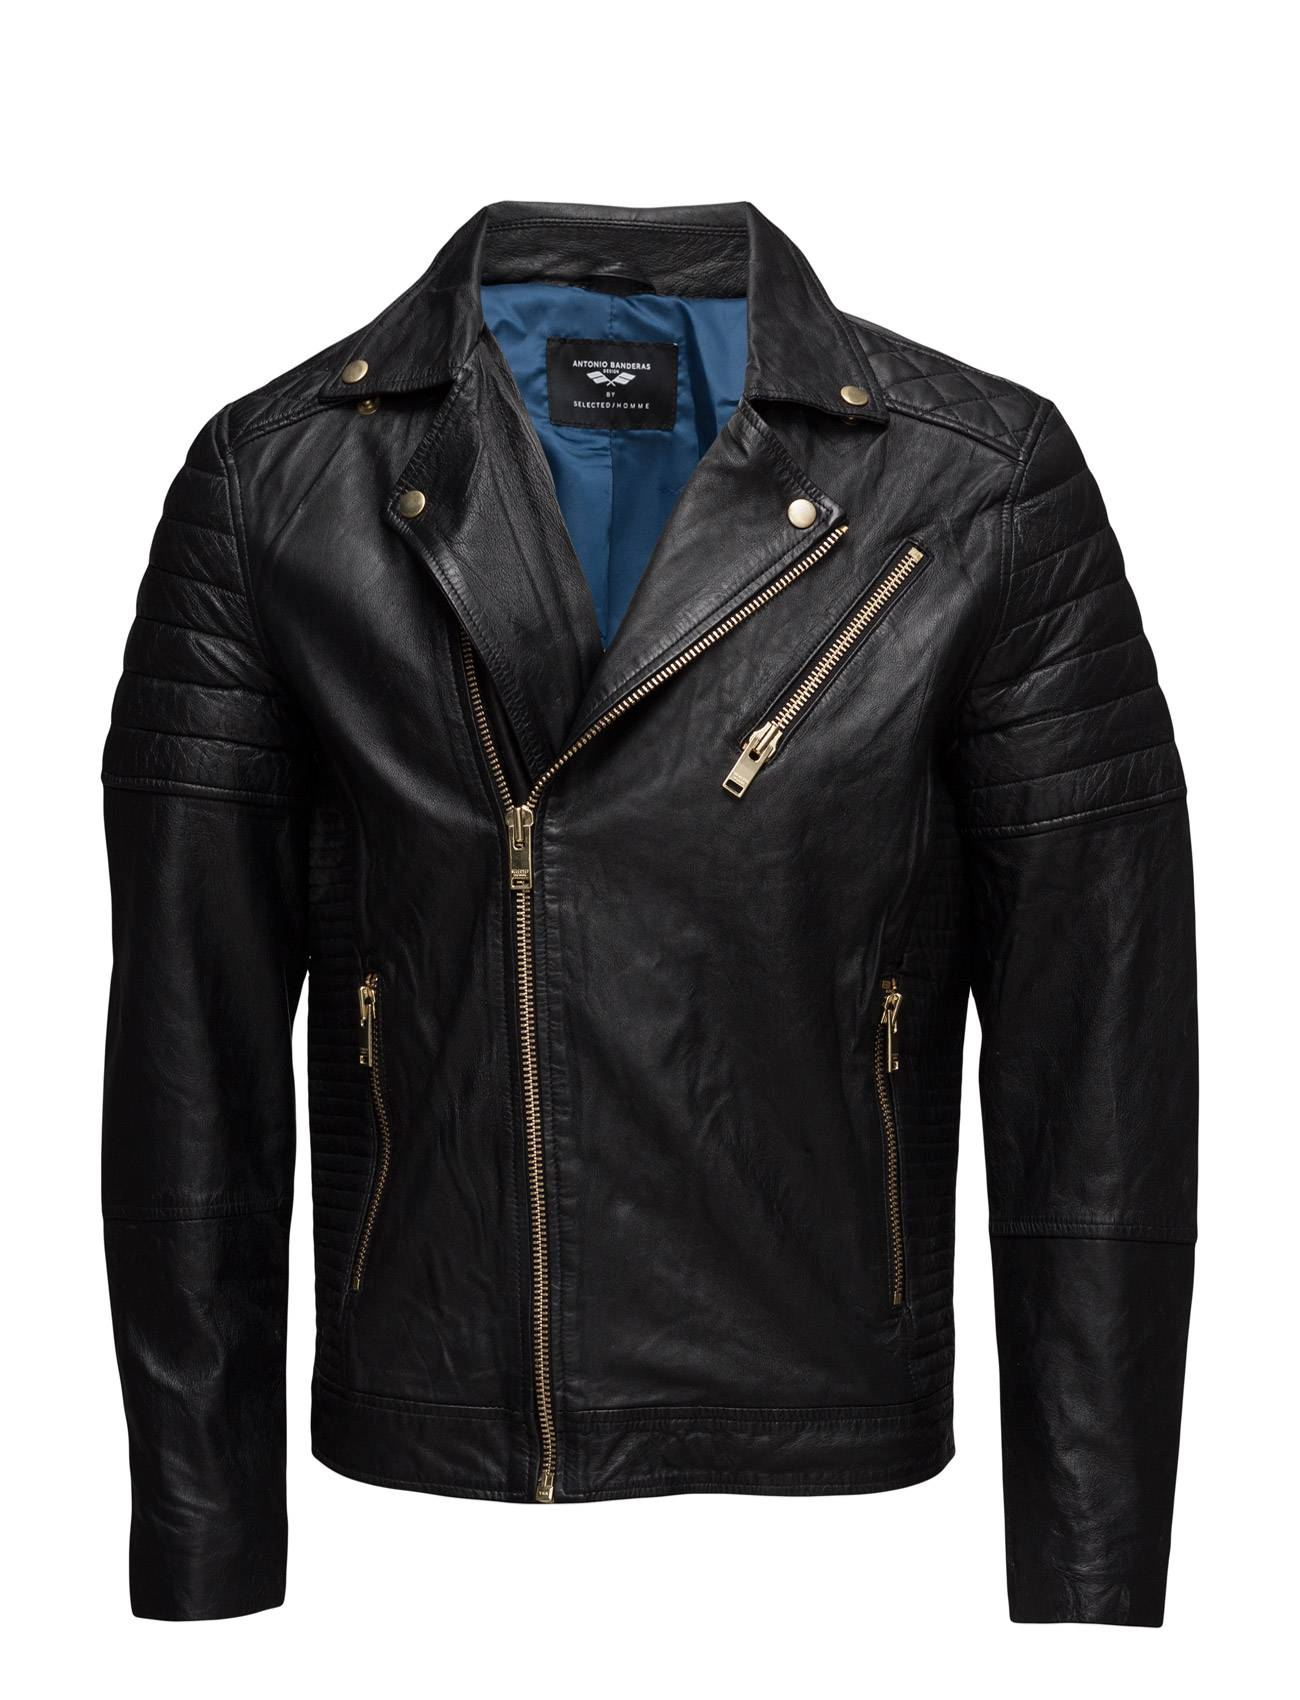 Selected Homme Ab Gold Leather Jacket